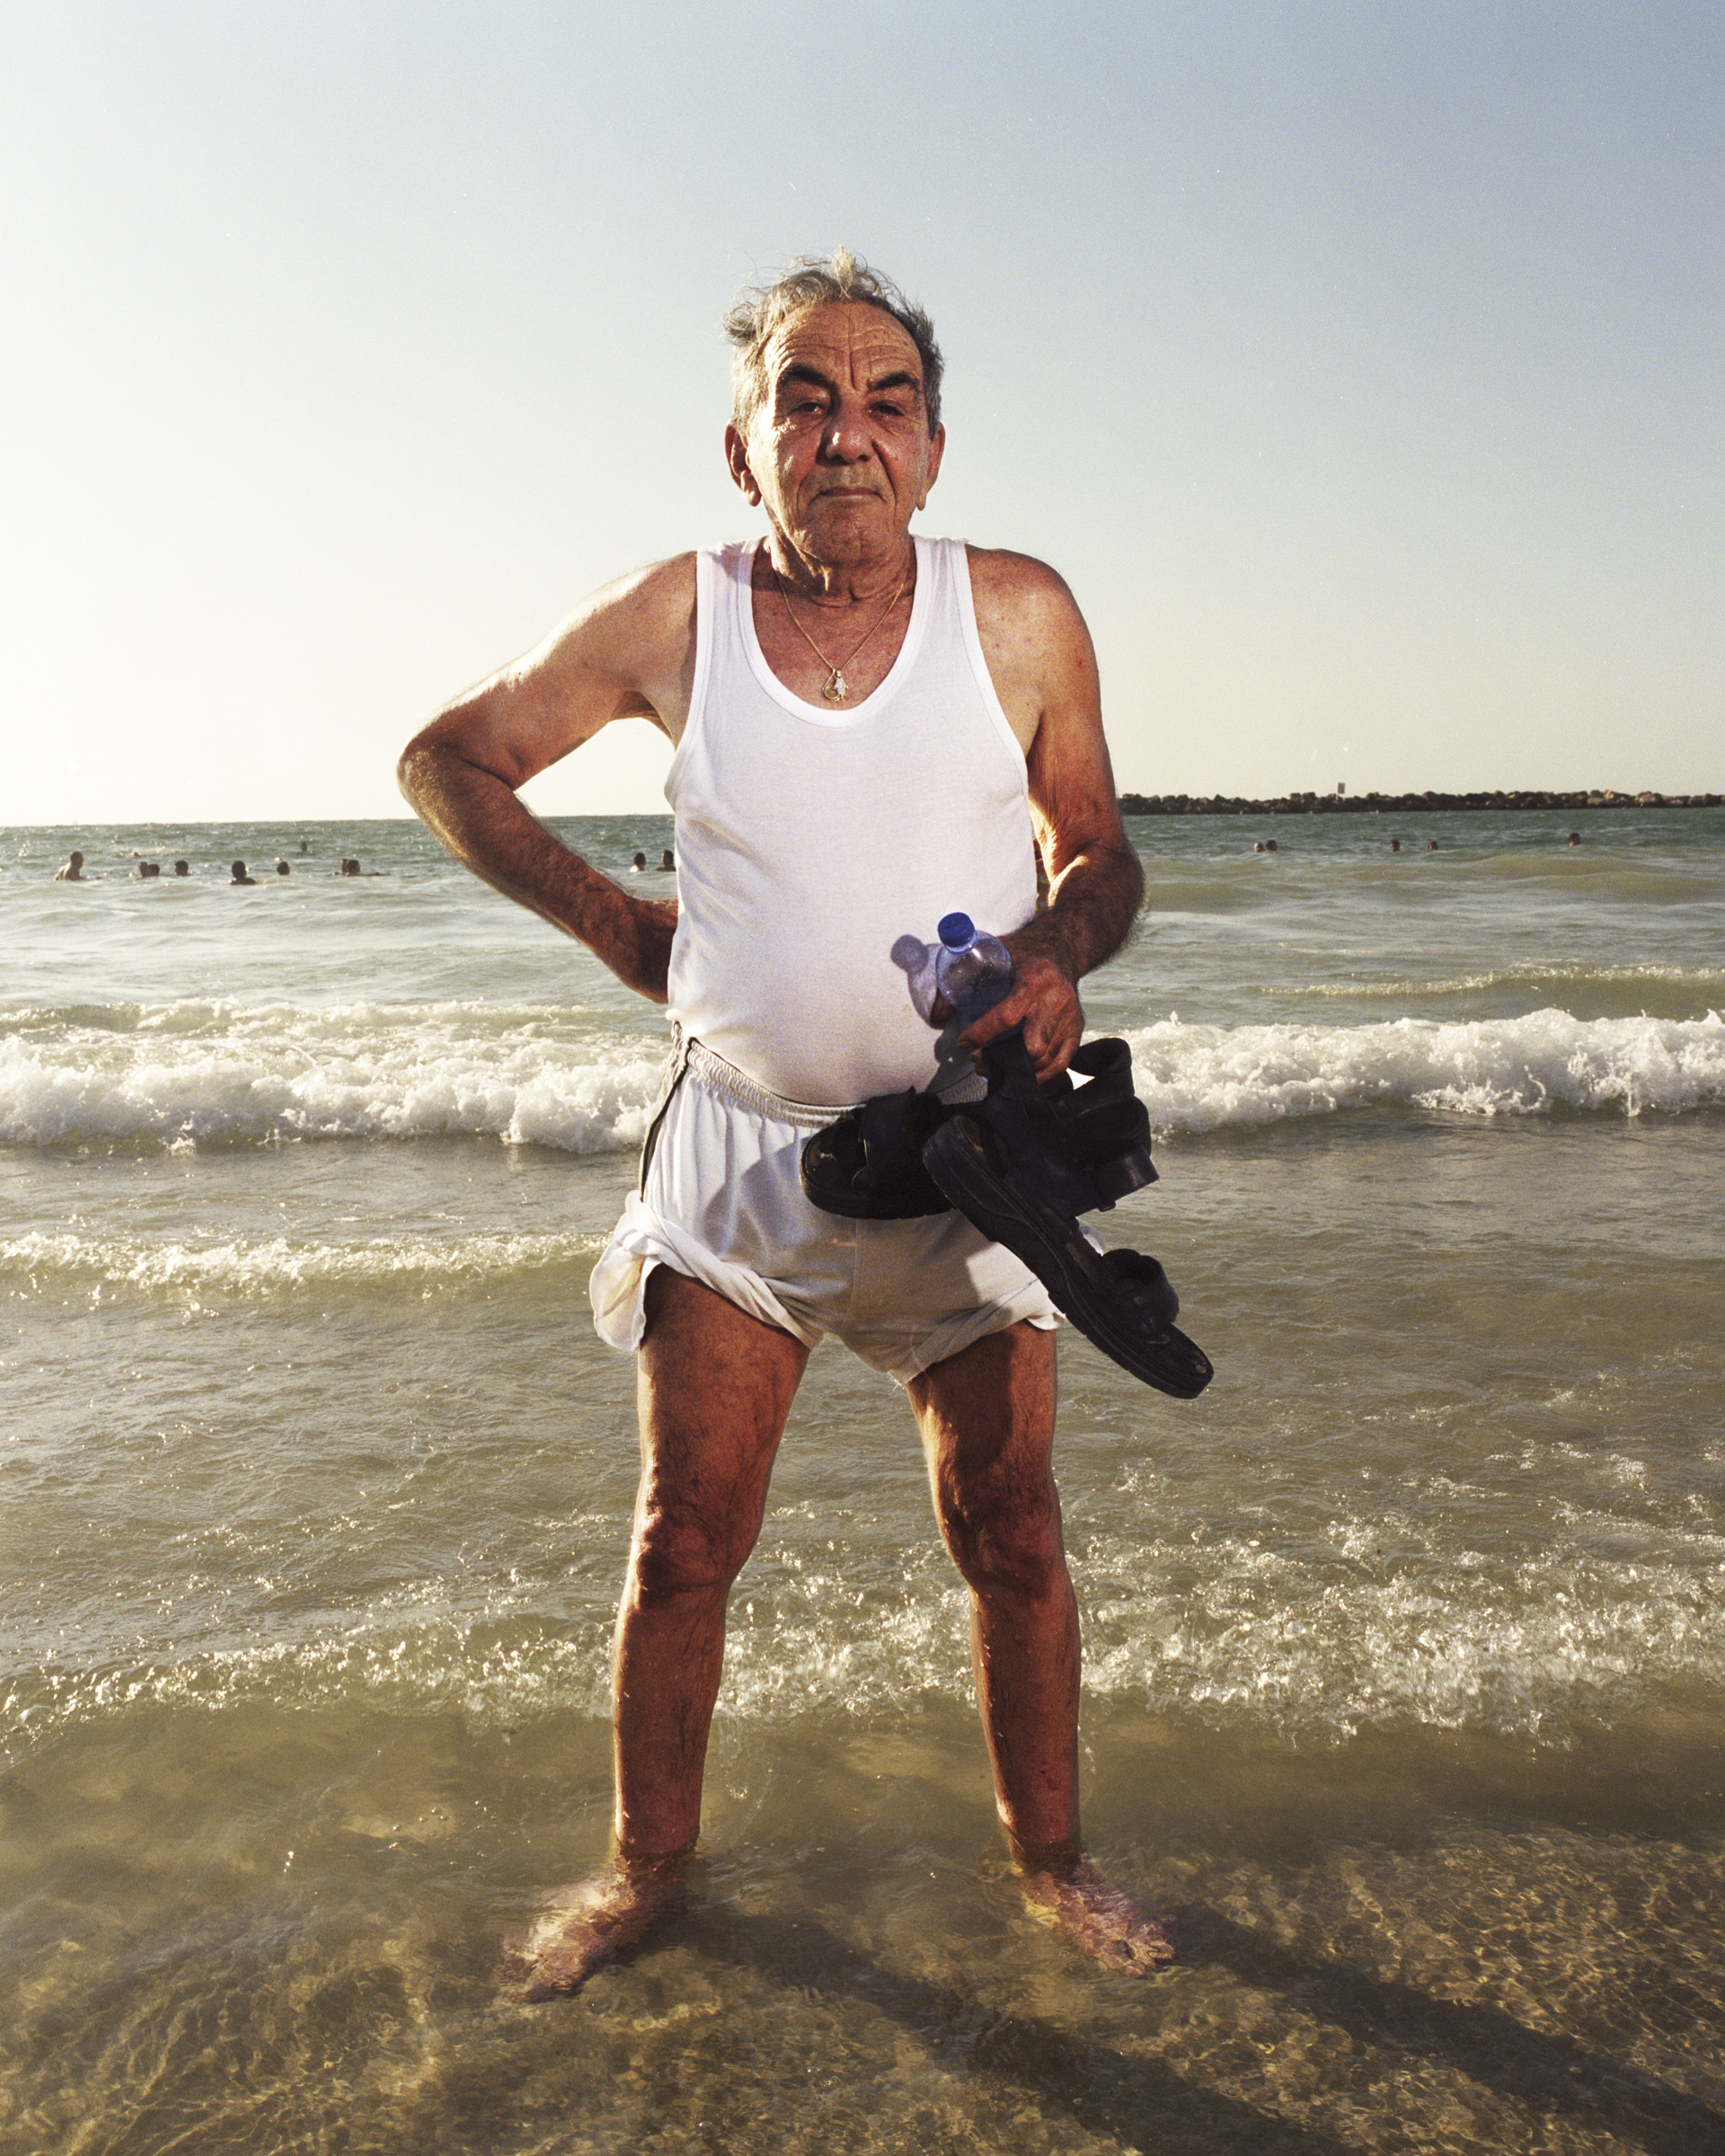 Yossi, 2011   Yossi, 78, likes to come to the beach twice a day, at sunrise and sunset.